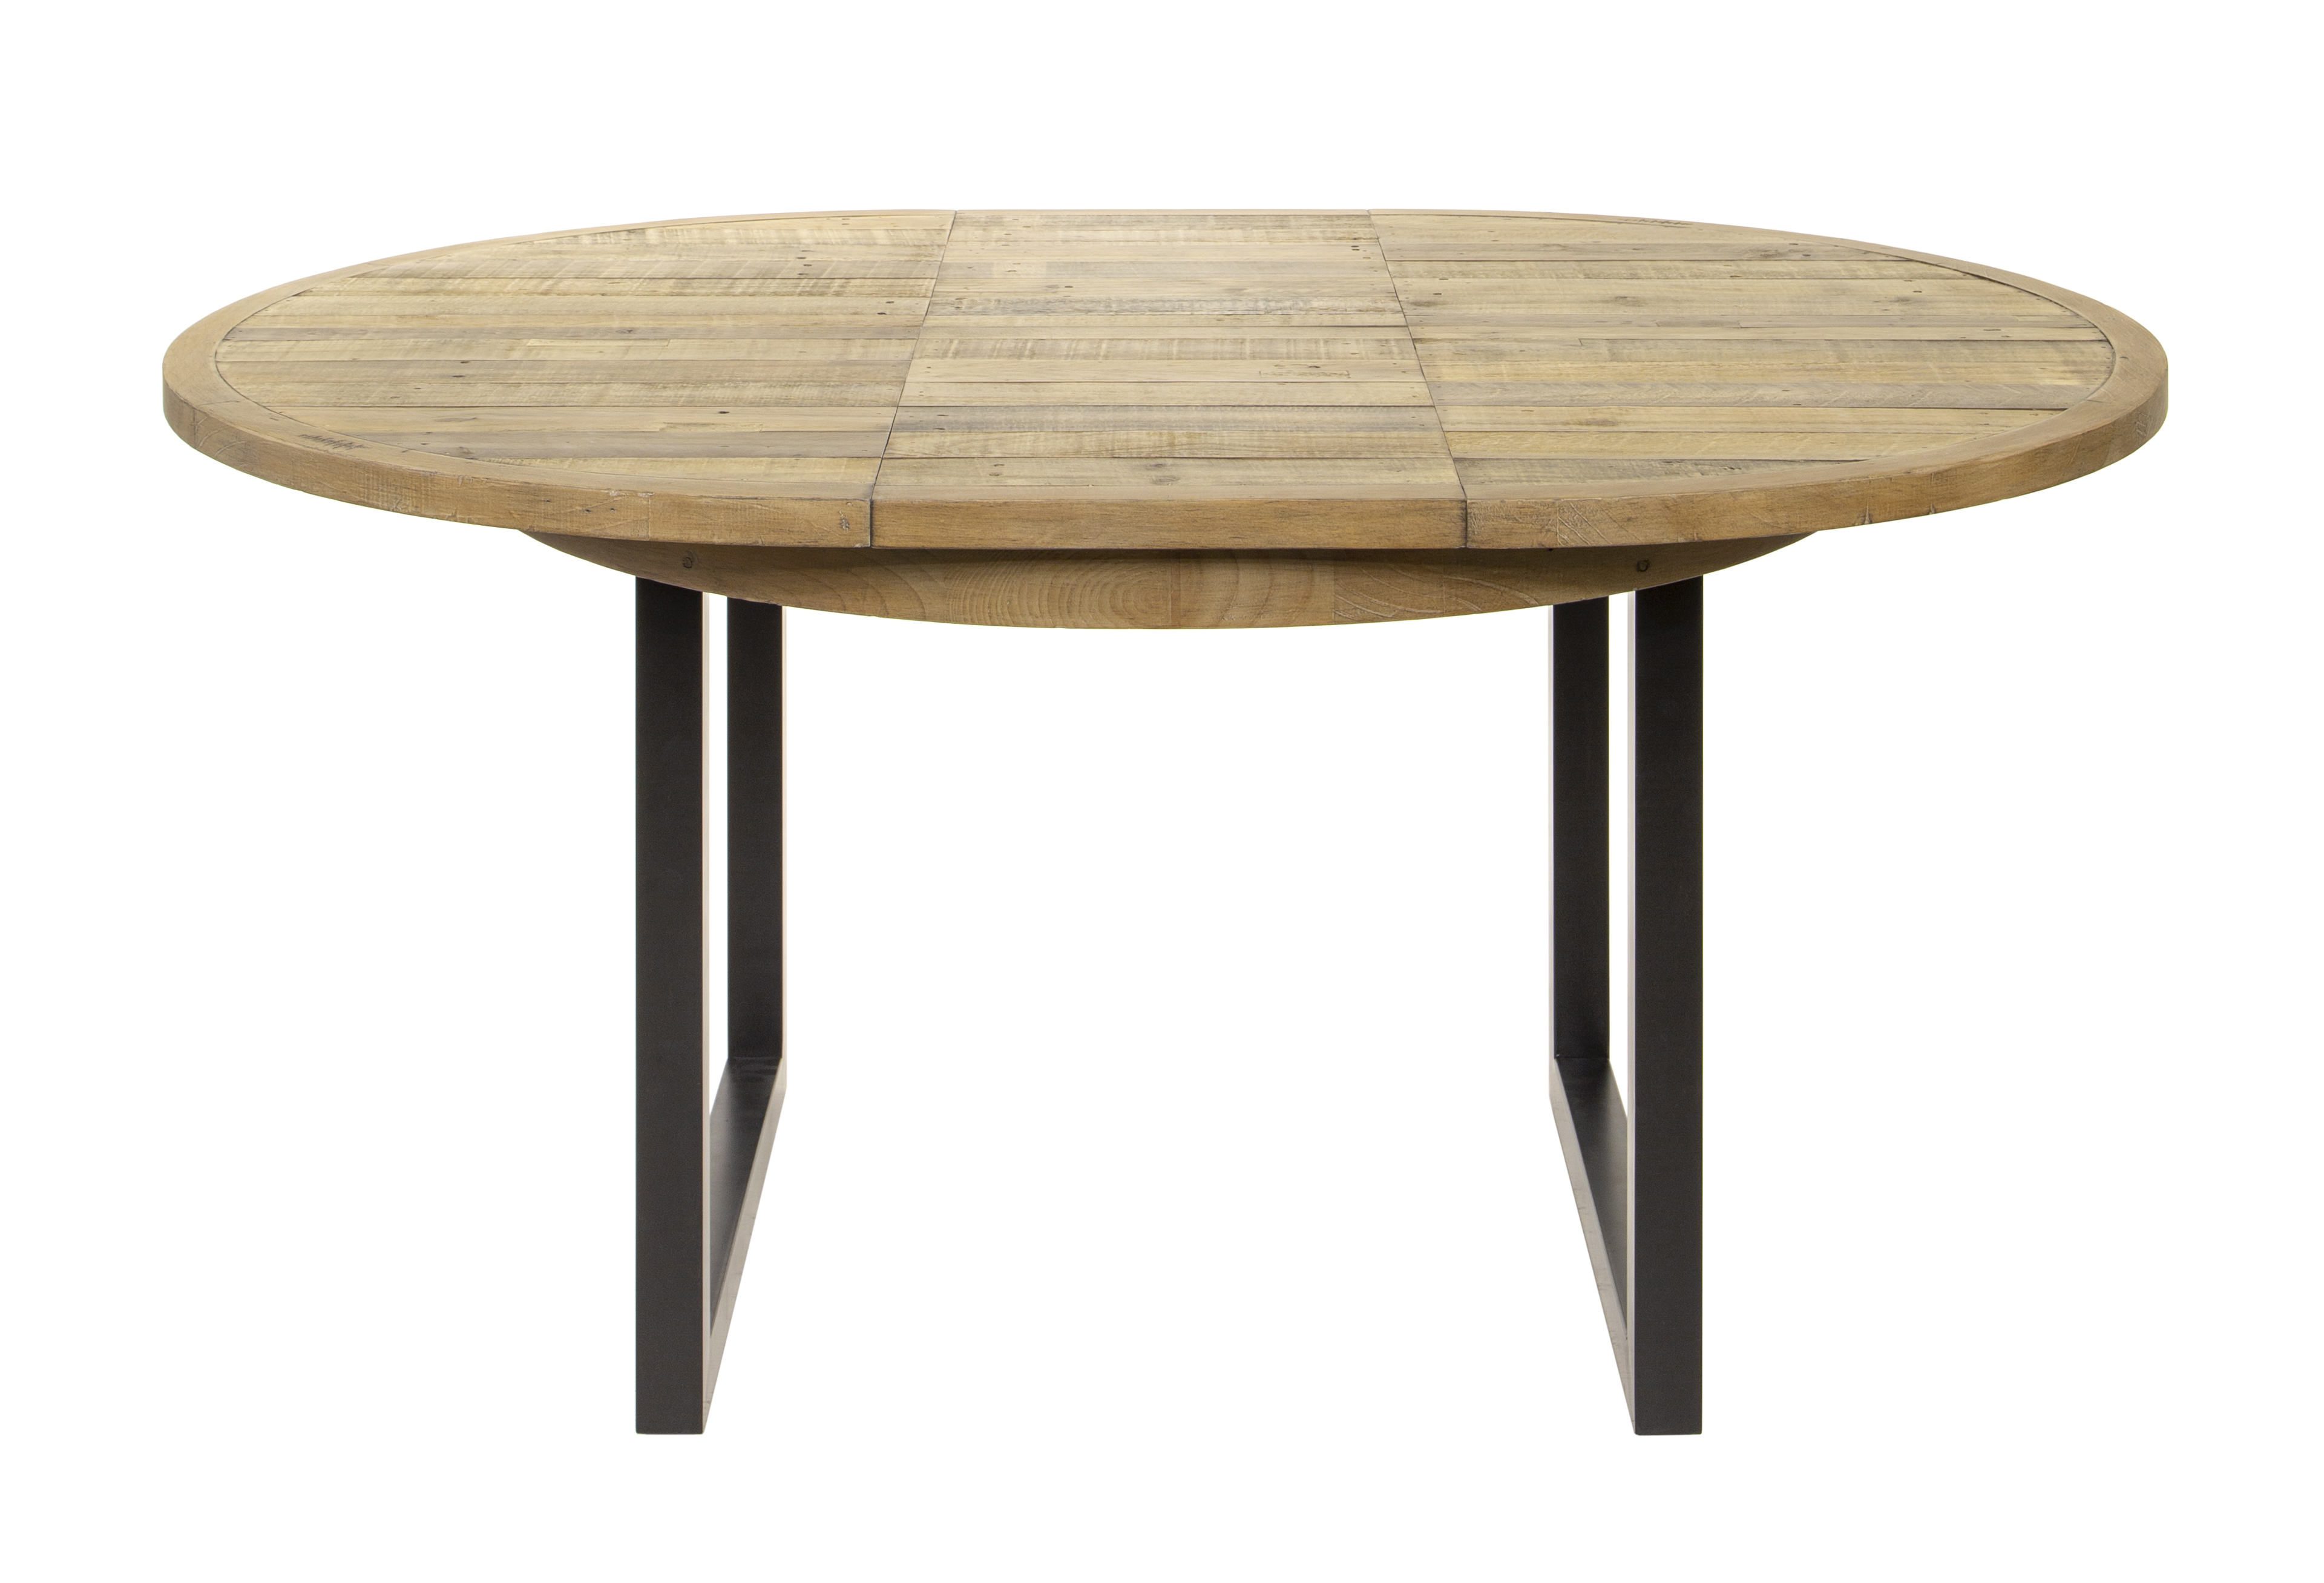 table ronde extensible en bois recycle d 120 160 cm brisbane tables a manger pier import